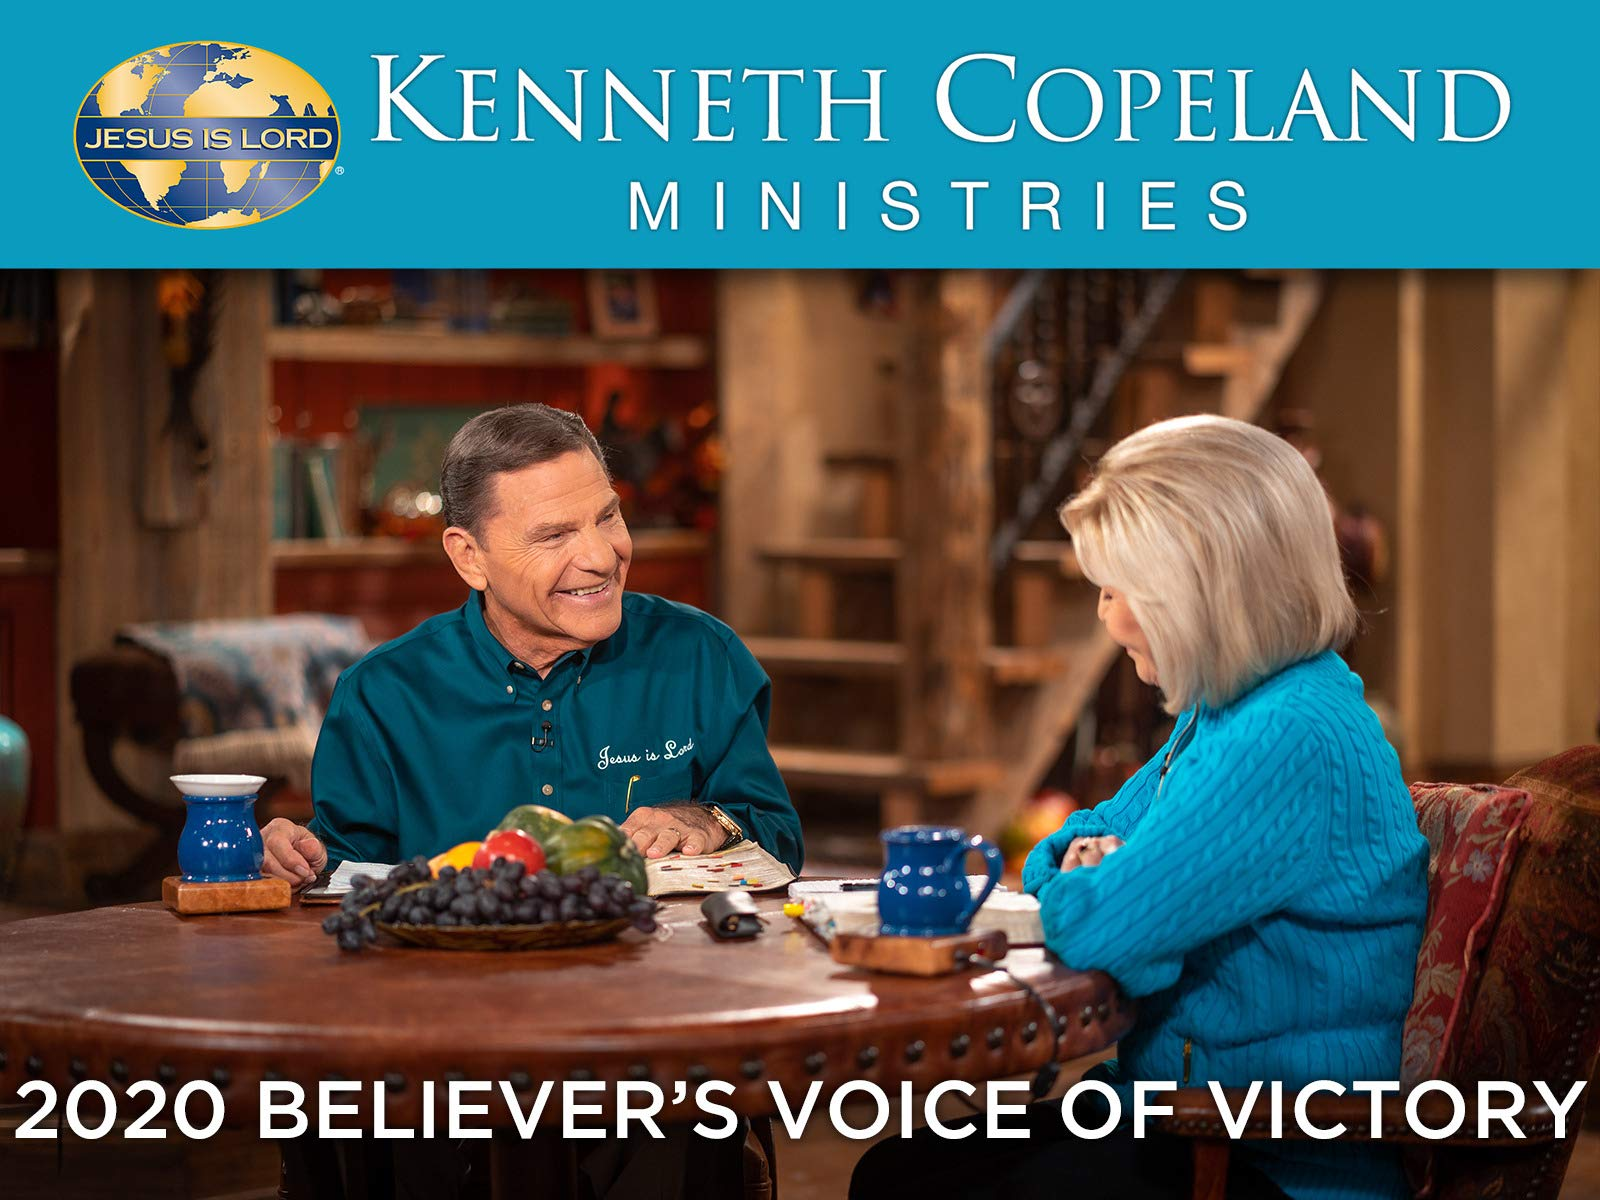 Kenneth Copeland 2020